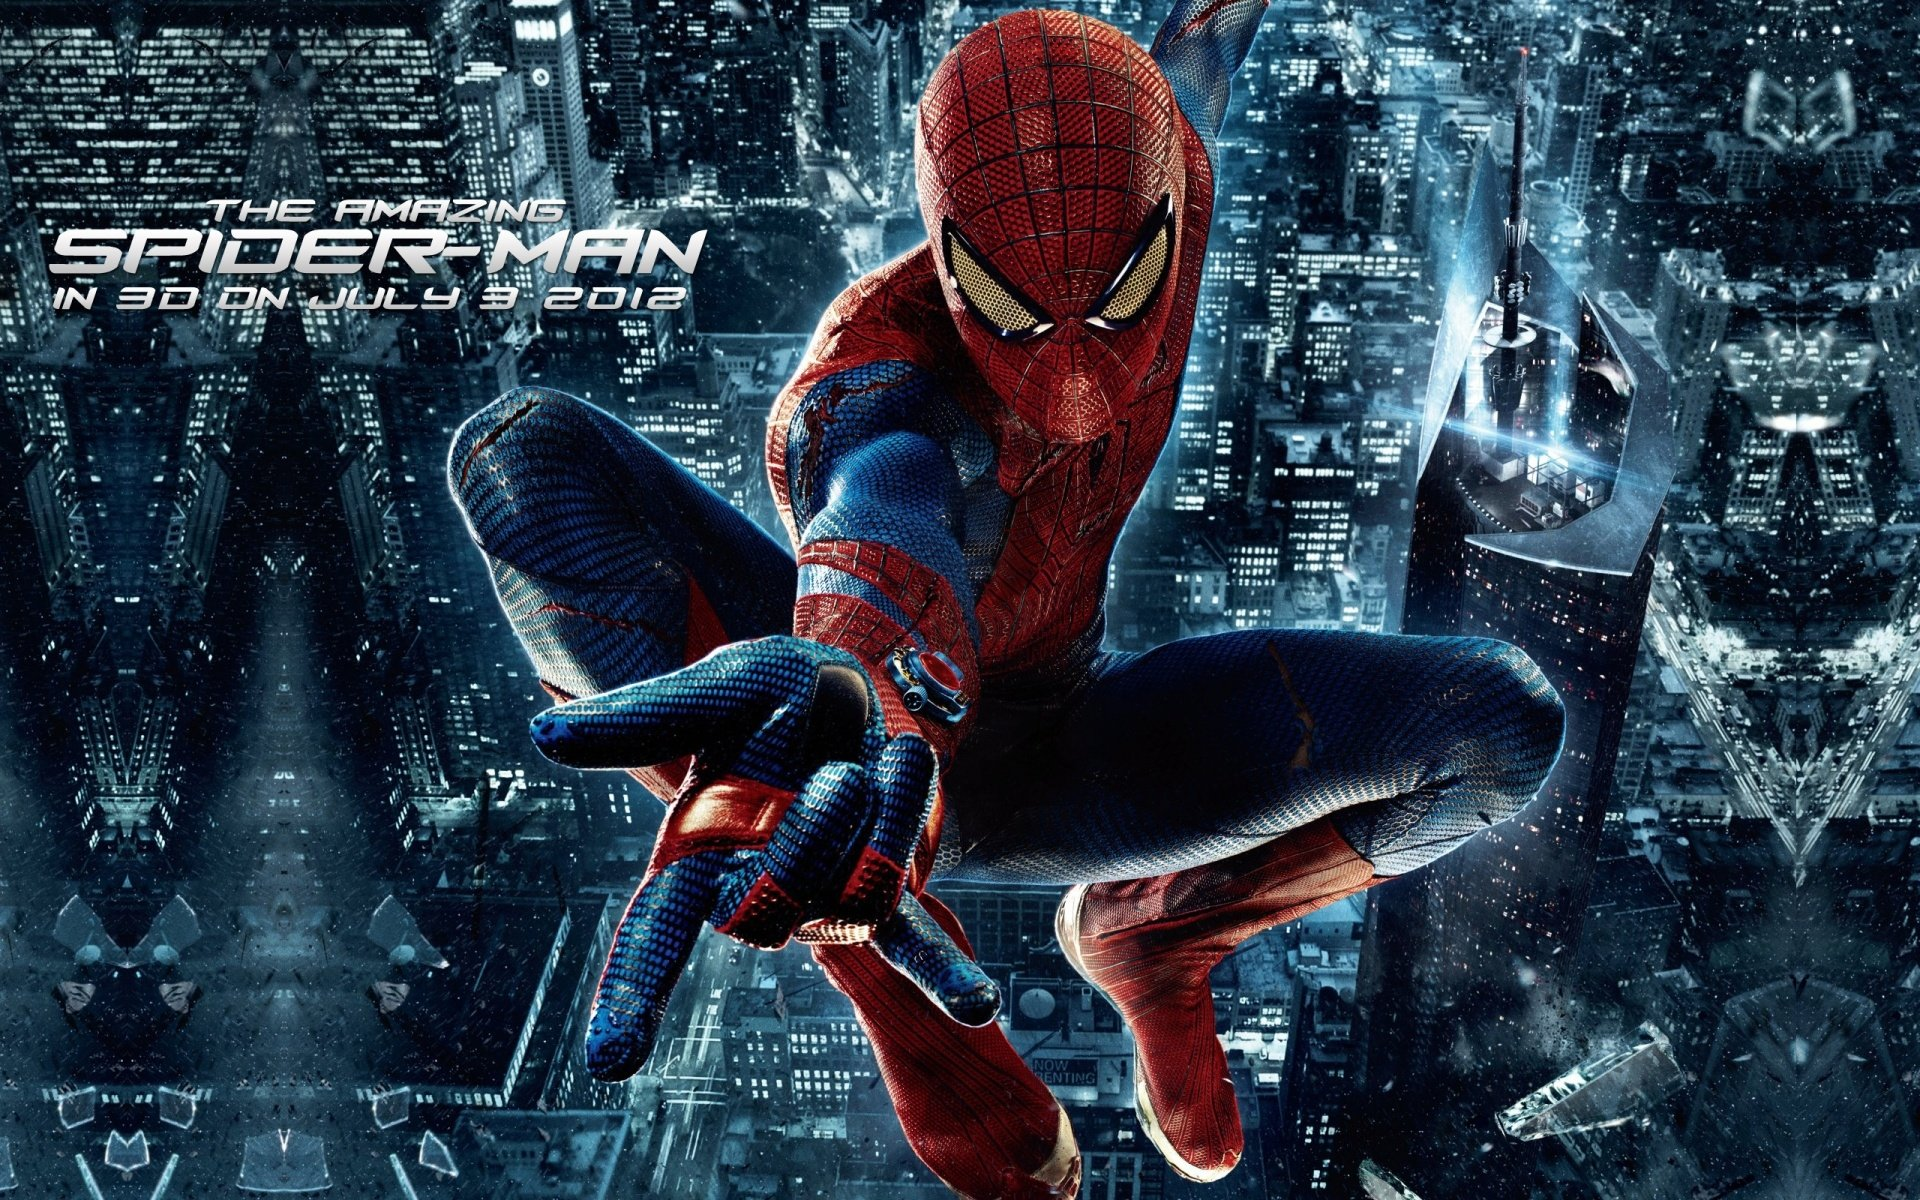 77 The Amazing Spider-Man HD Wallpapers | Backgrounds - Wallpaper